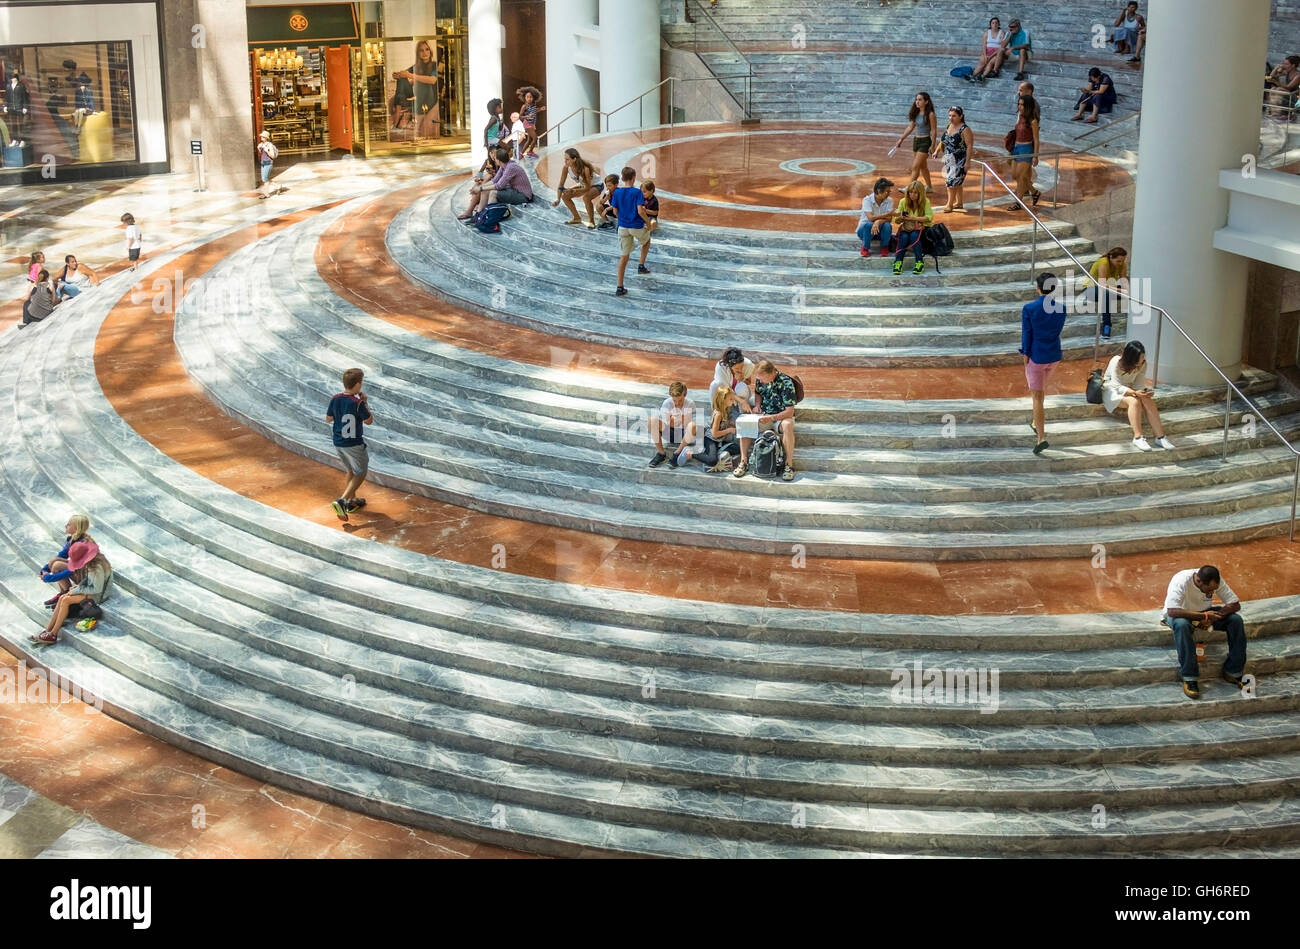 visitors sitting on the curved marble steps in the winter garden